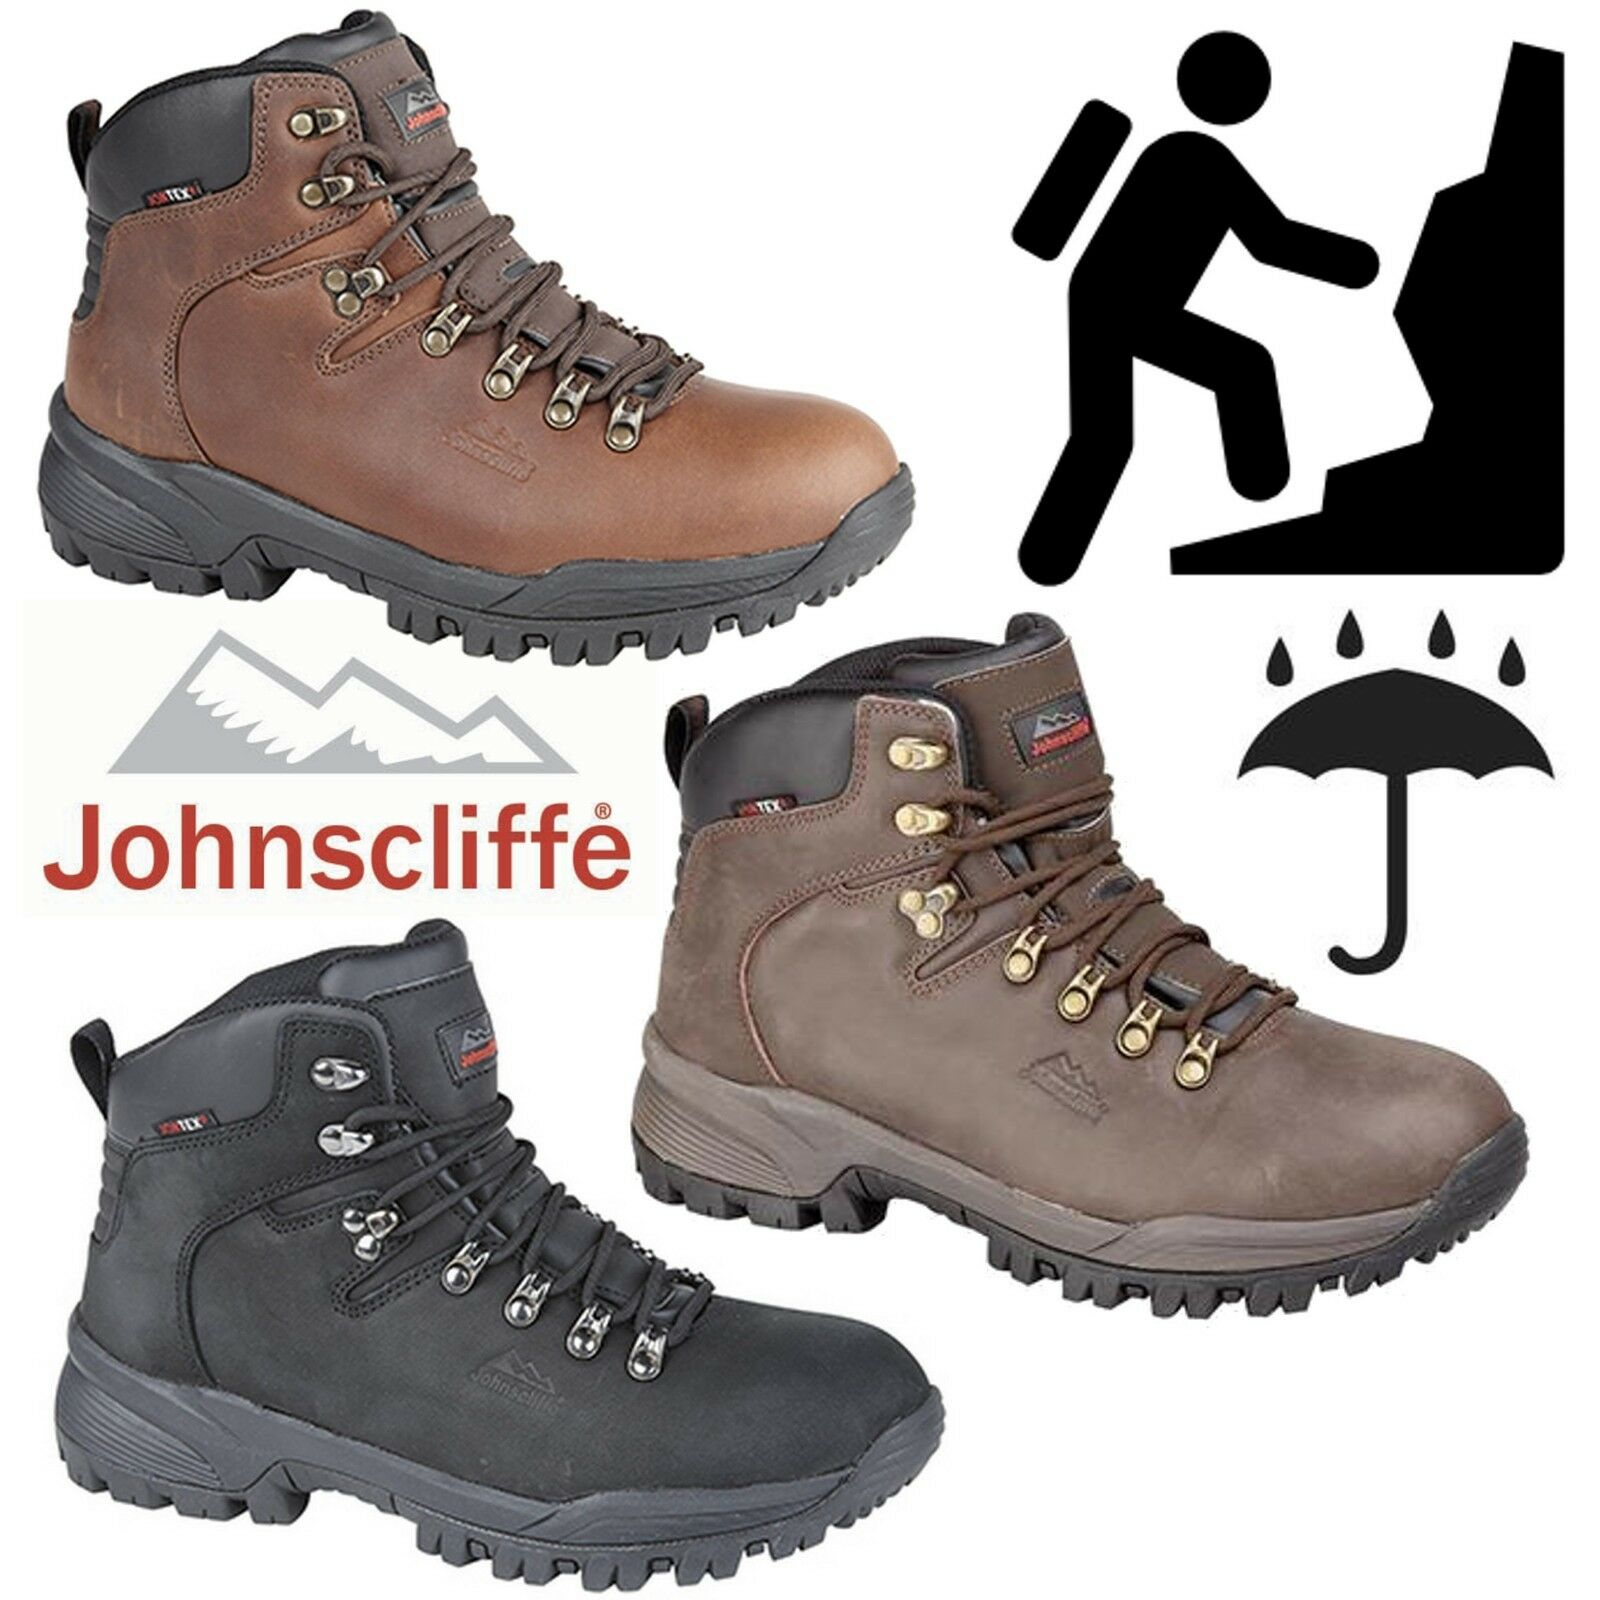 Johnscliffe Mens Canyon Leather Hiking Stiefel Boys Hillwalking Trail Trek schuhe